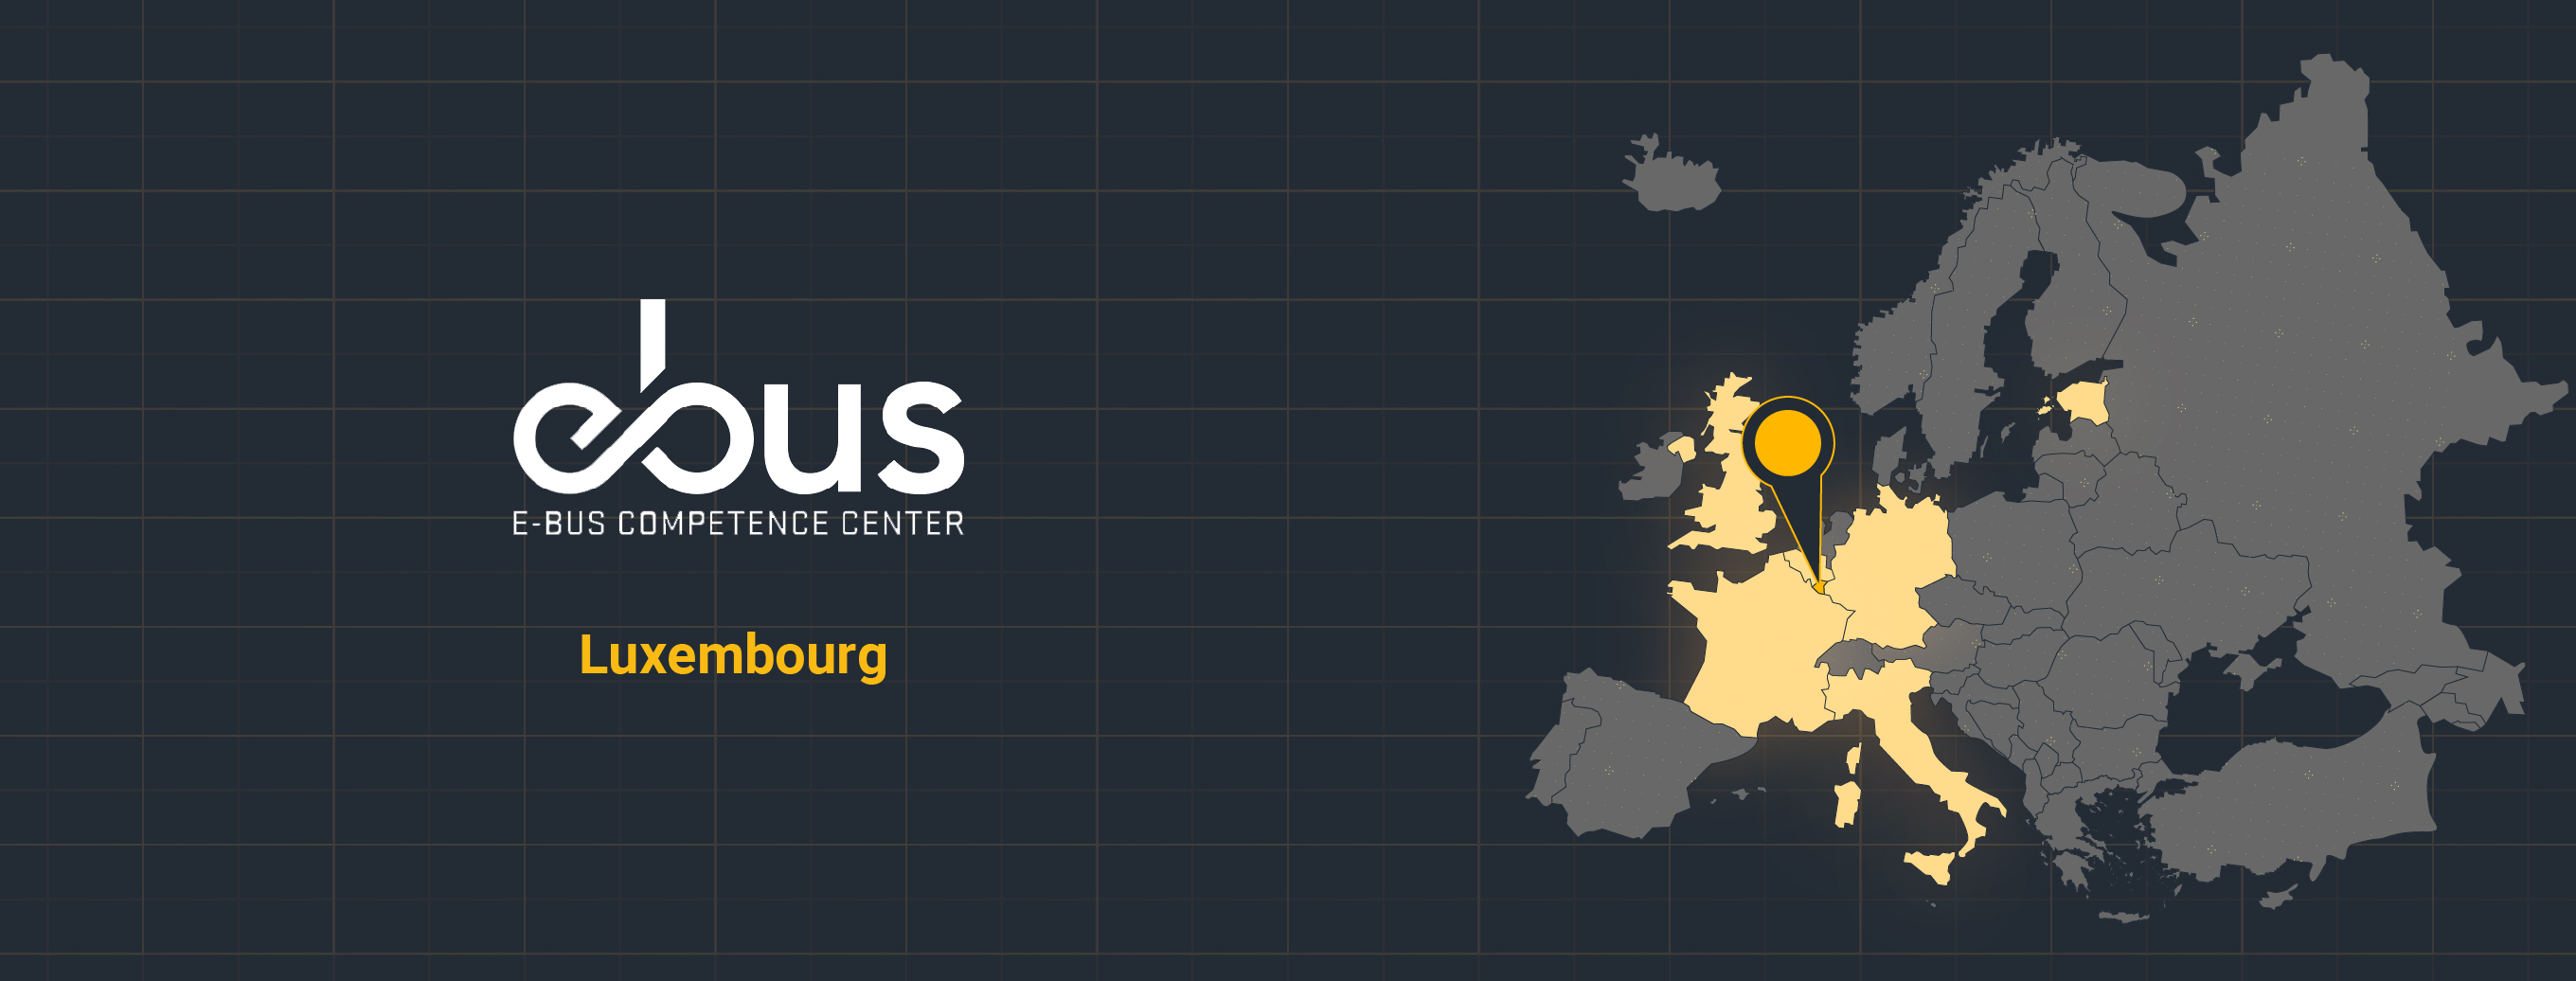 ebus map highlights Luxembourg